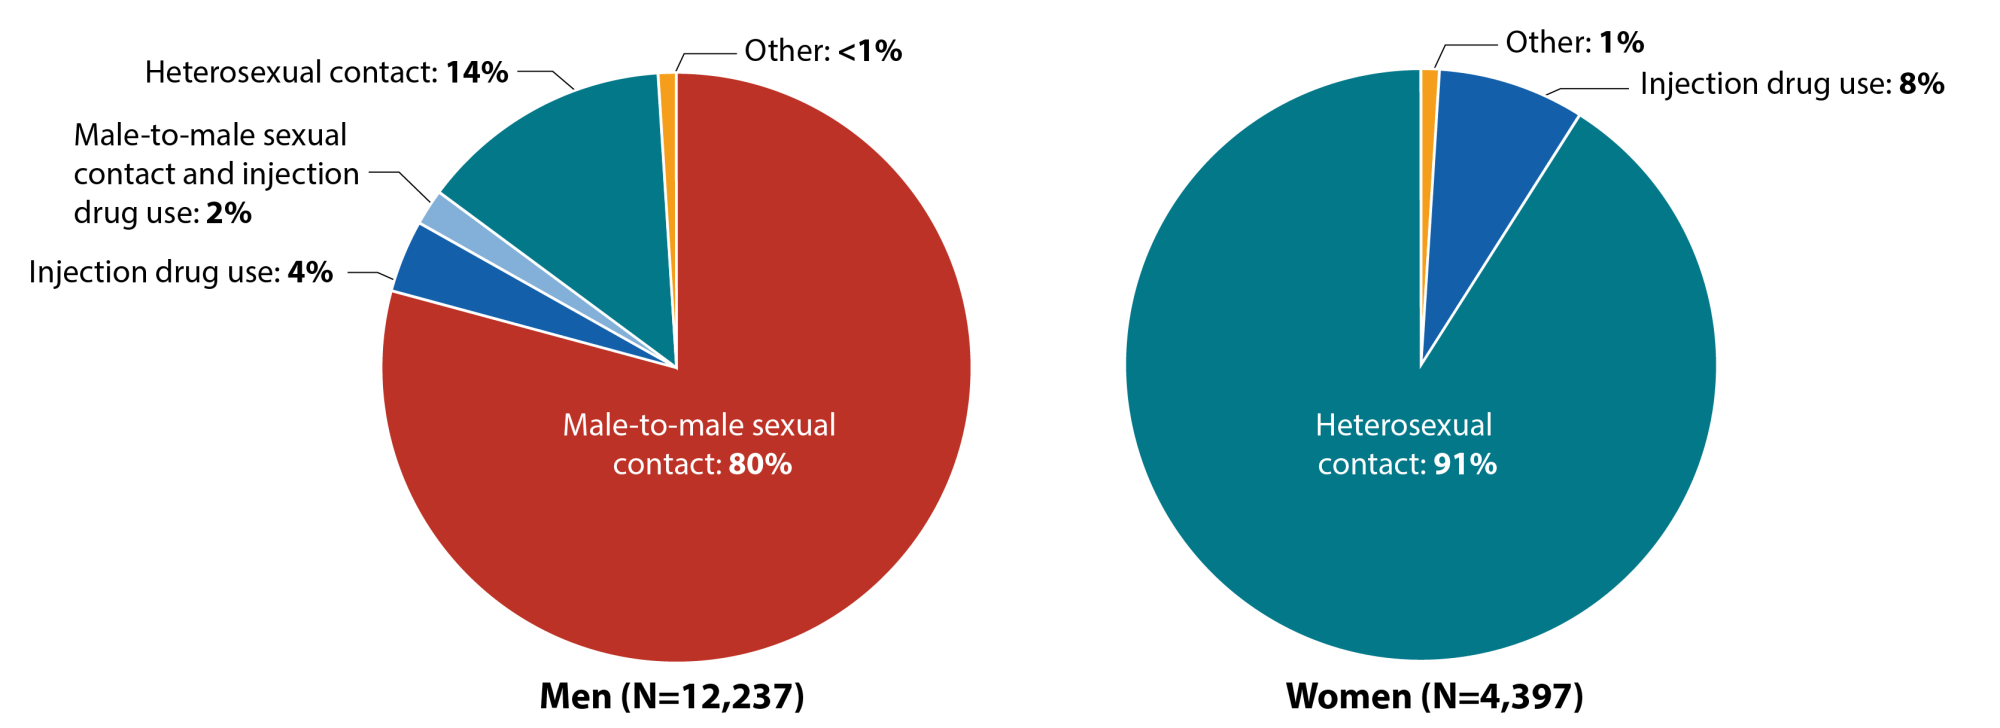 hight resolution of these pie charts show the number of new hiv diagnoses in the united states and dependent